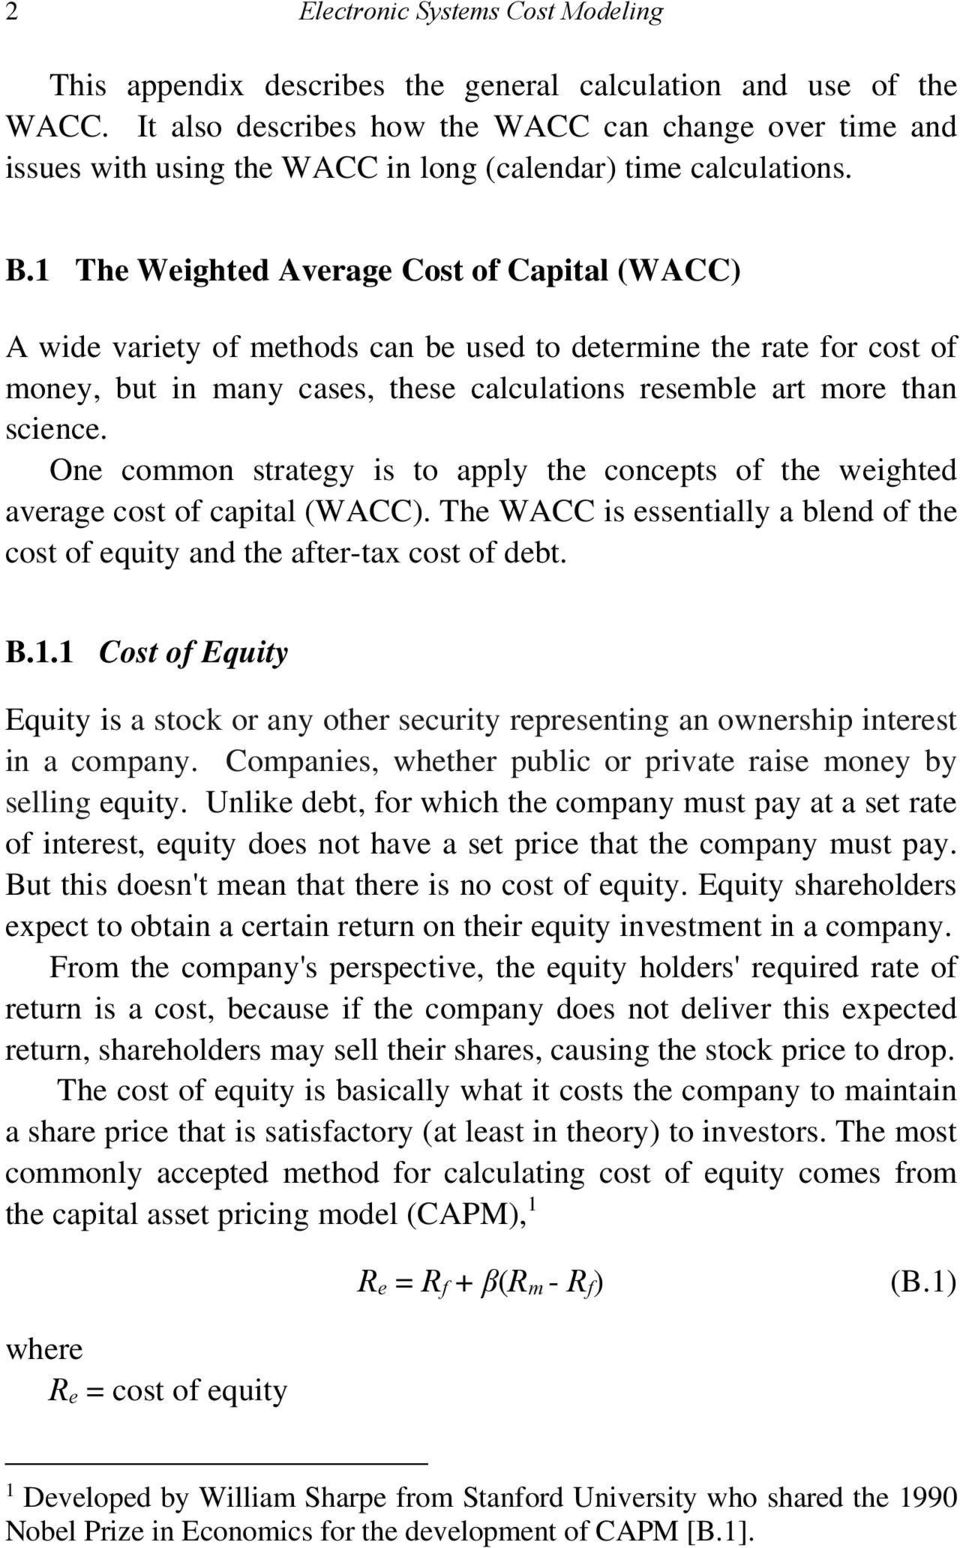 1 The Weighted Average Cost of Capital (WACC) A wide variety of methods can be used to determine the rate for cost of money, but in many cases, these calculations resemble art more than science.